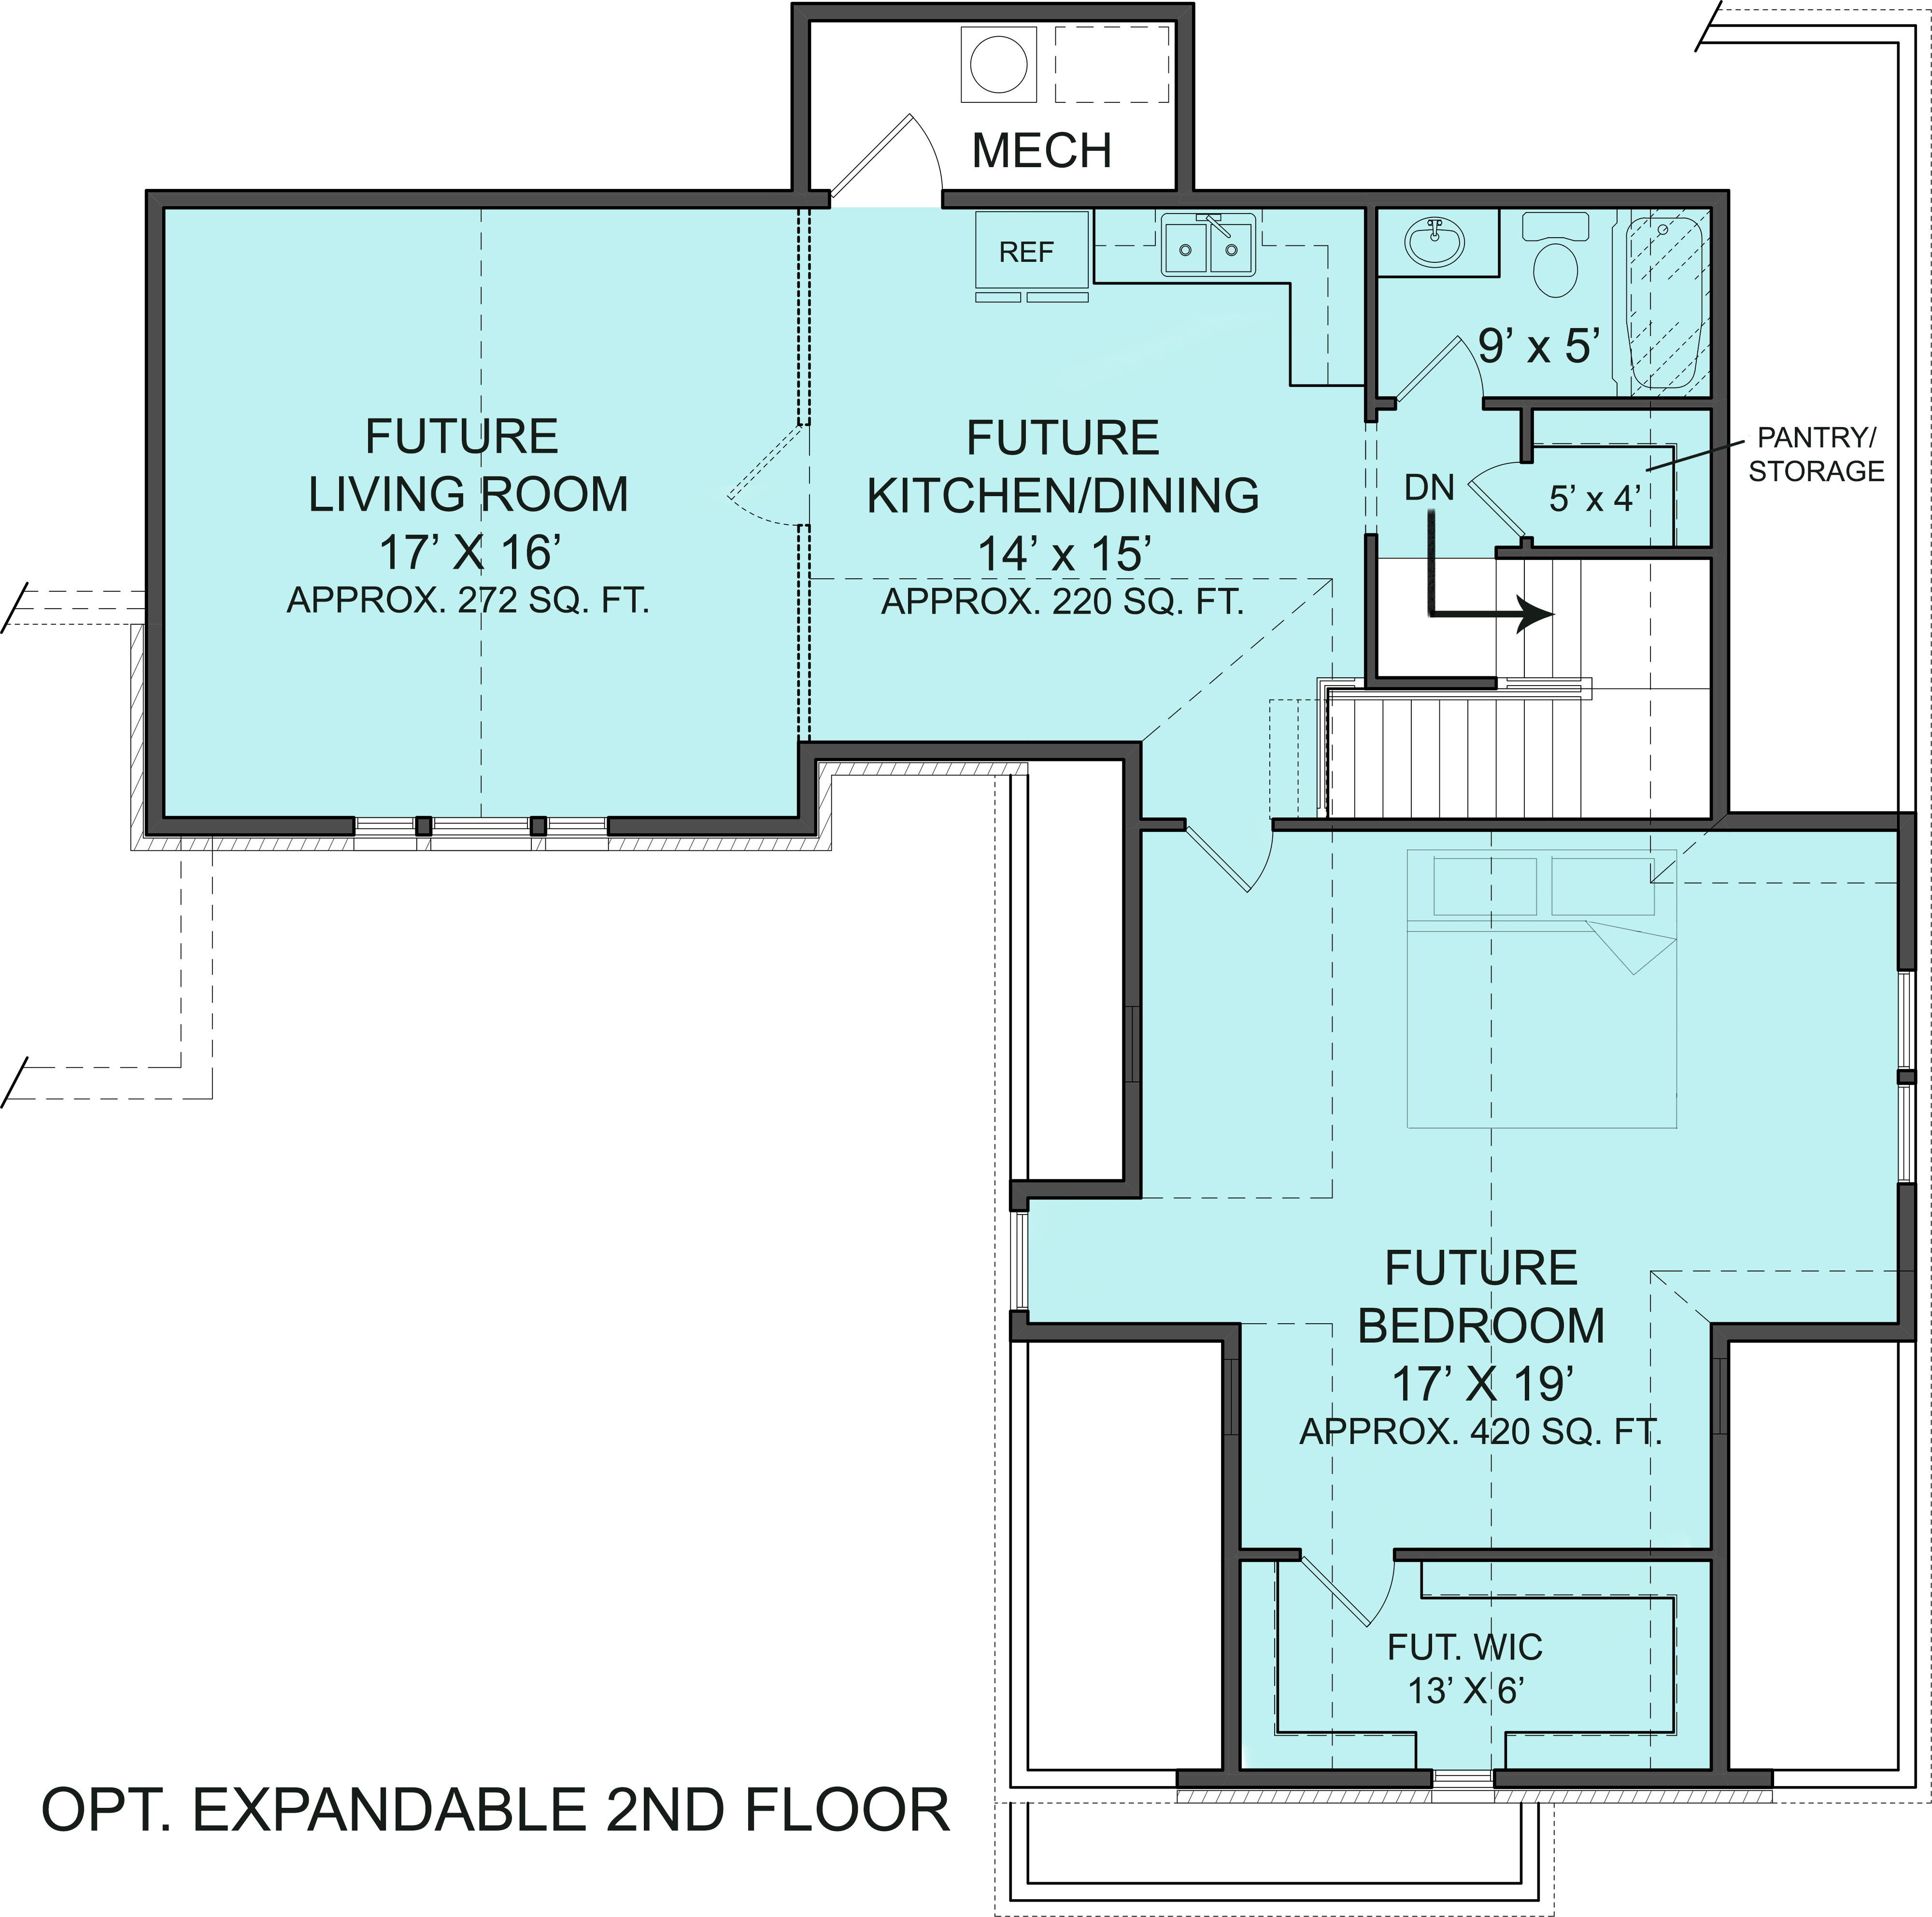 Garage with living space floor plans best free home for Garage floor plans with living space